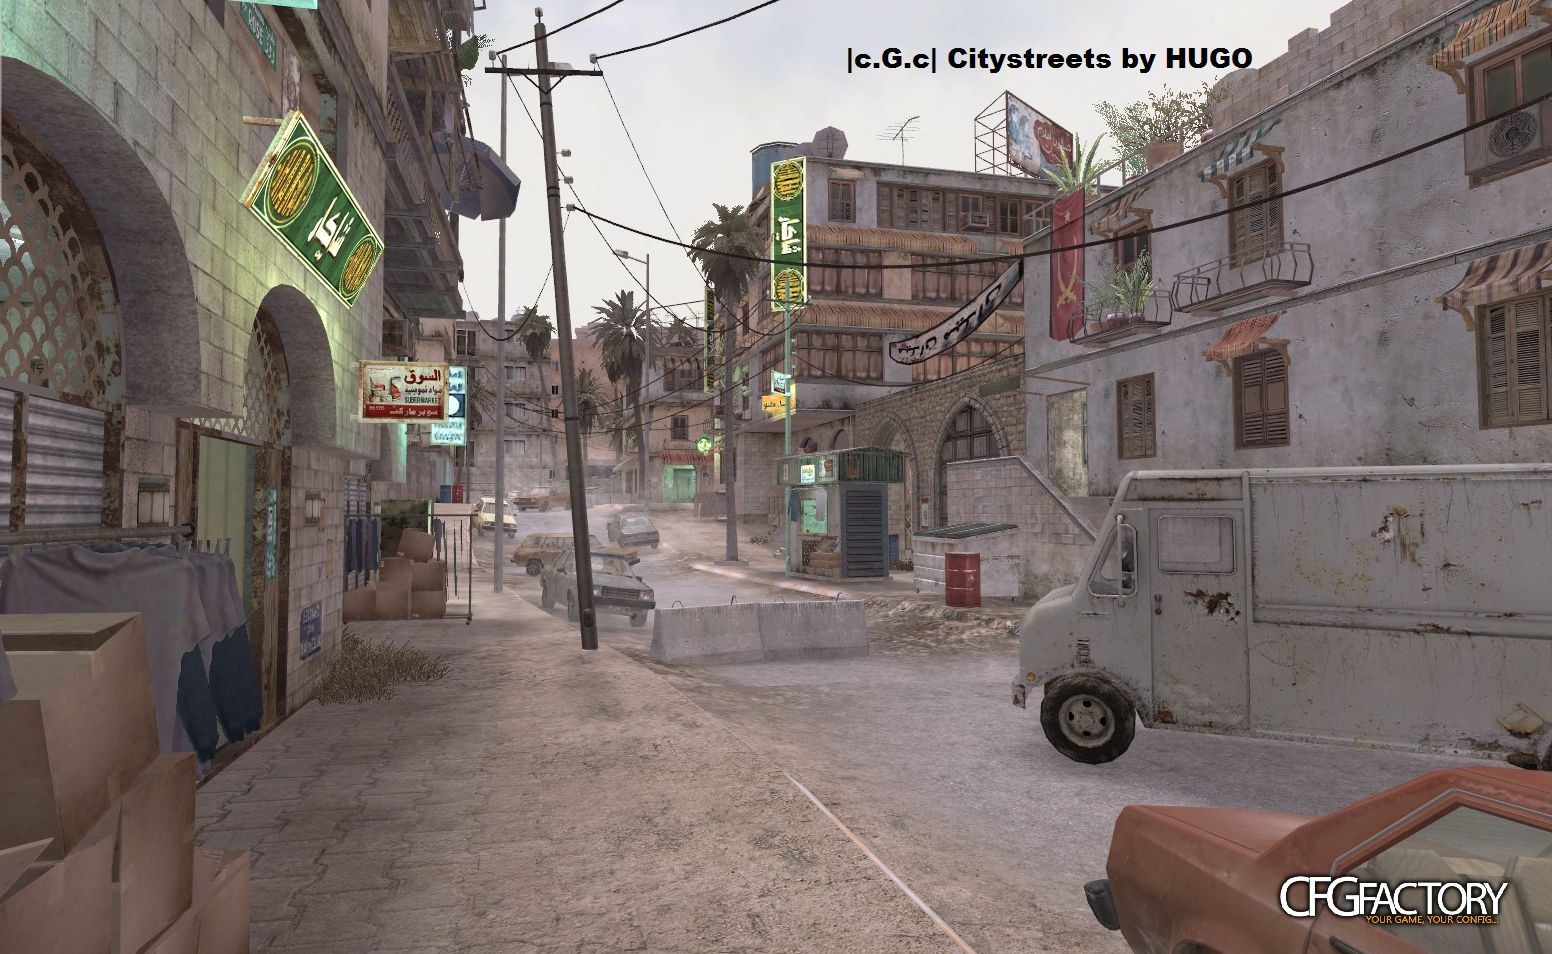 cod4, maps, mp_citystreets, hugo